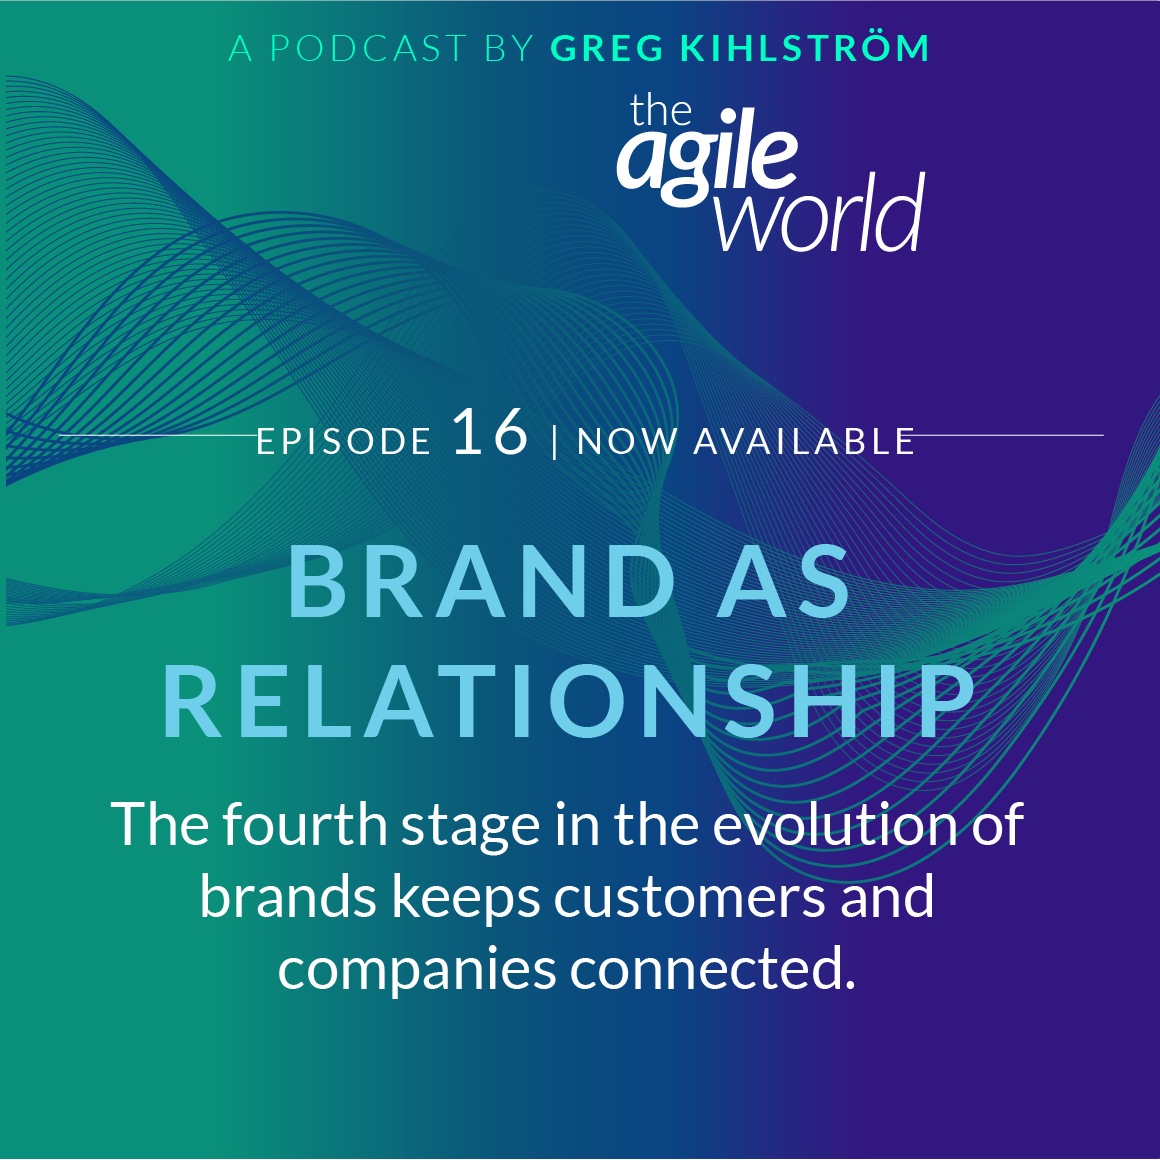 TheAgileWorld-Episode-16-Greg-Kihlstrom.png